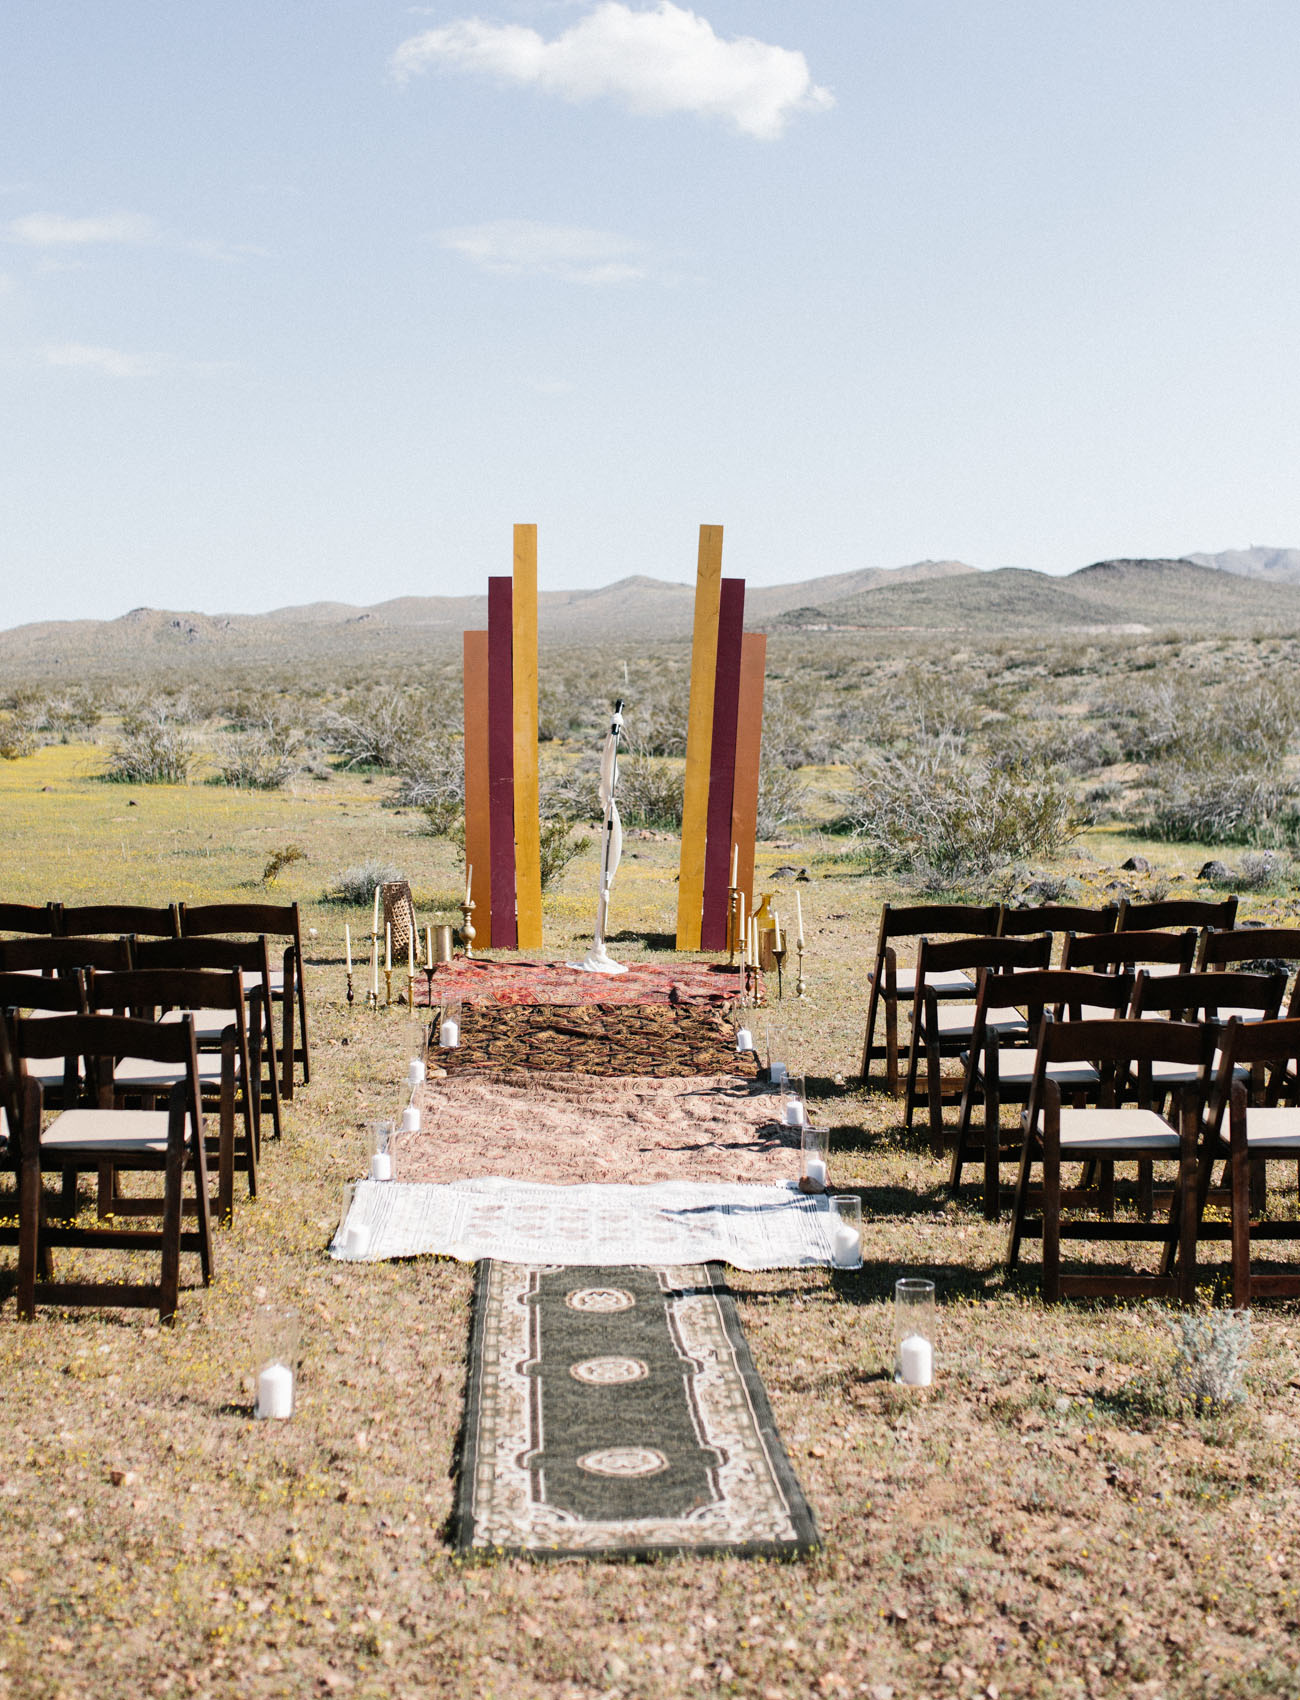 The wedding ceremony space was done with layered rugs, candles and colorful decor plus candlesticks